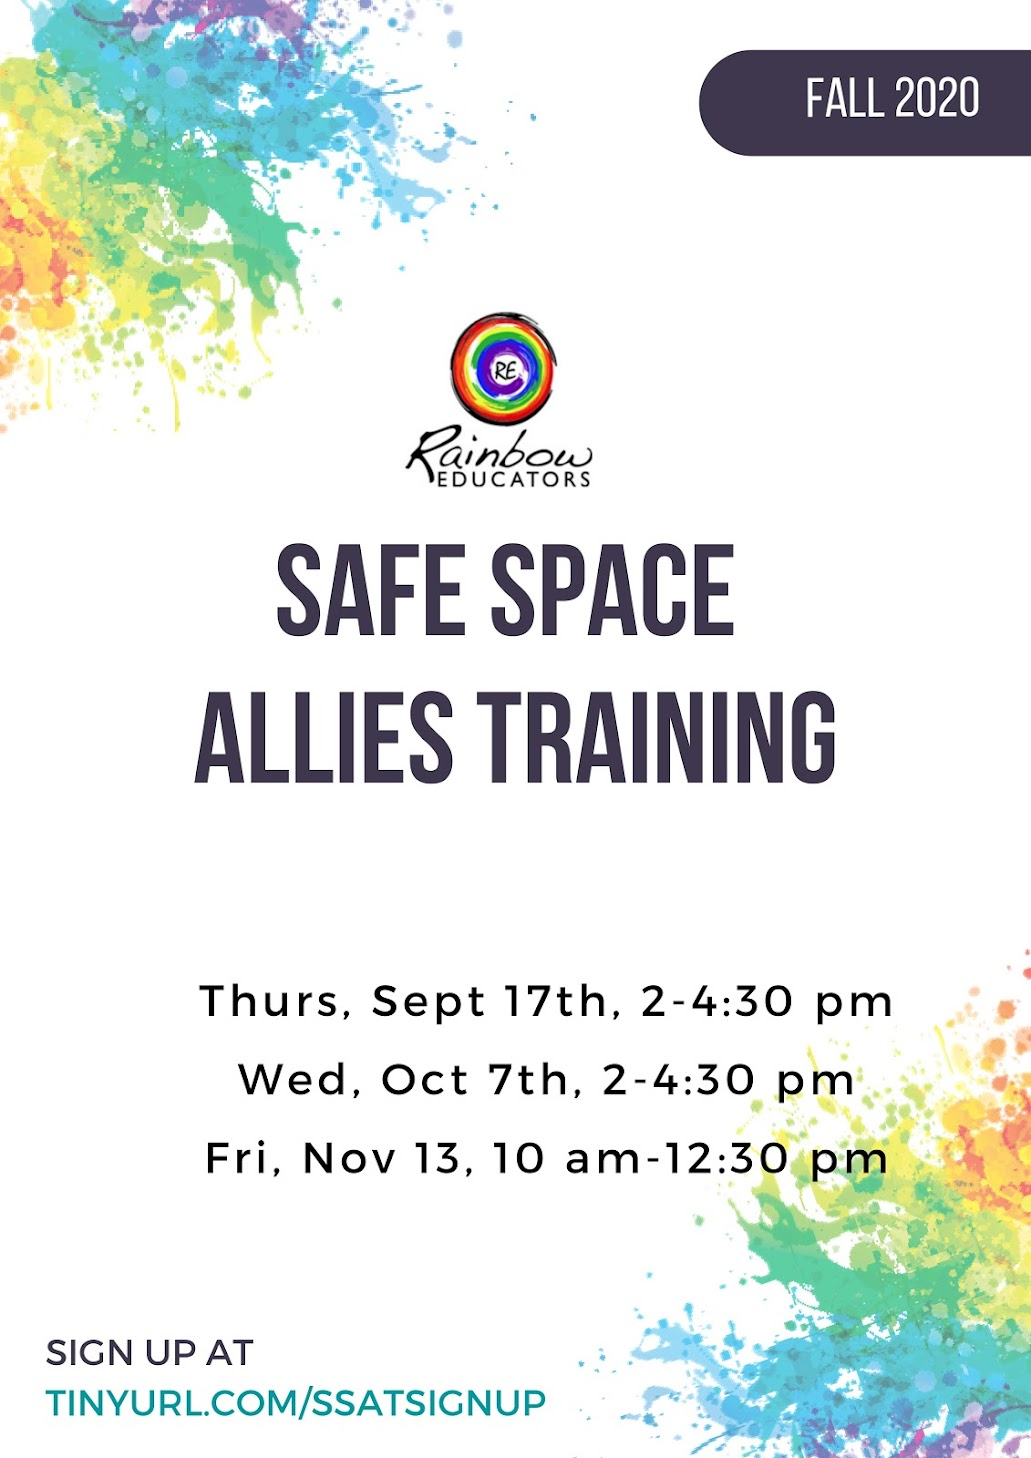 Safe Space Allies Training flyer, multiple dates